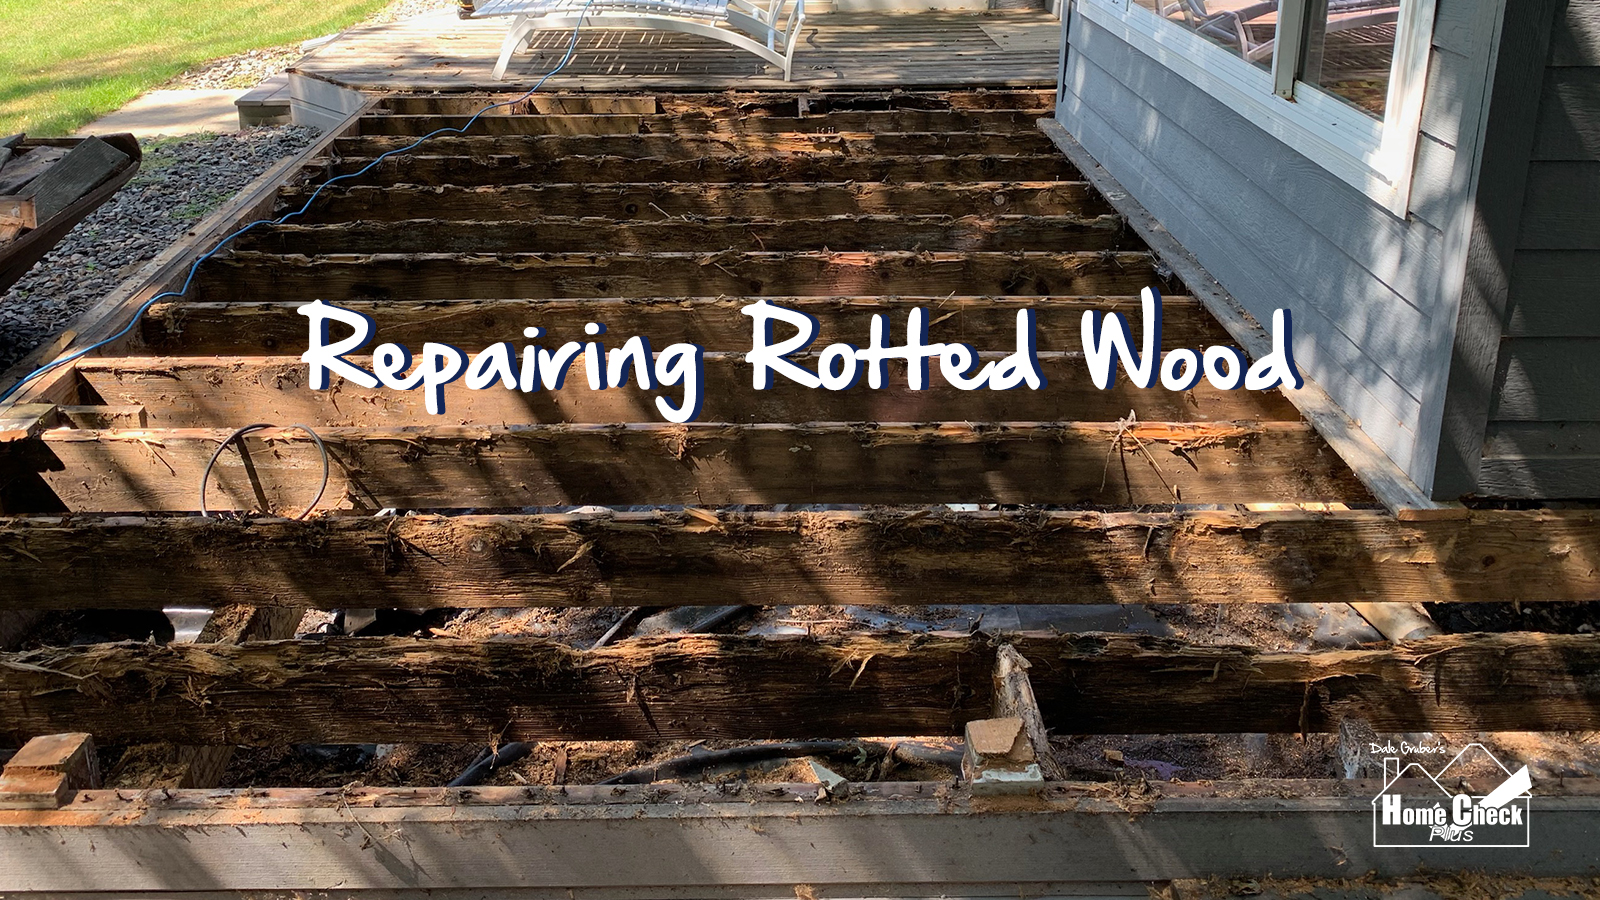 Repairing Rotted Wood